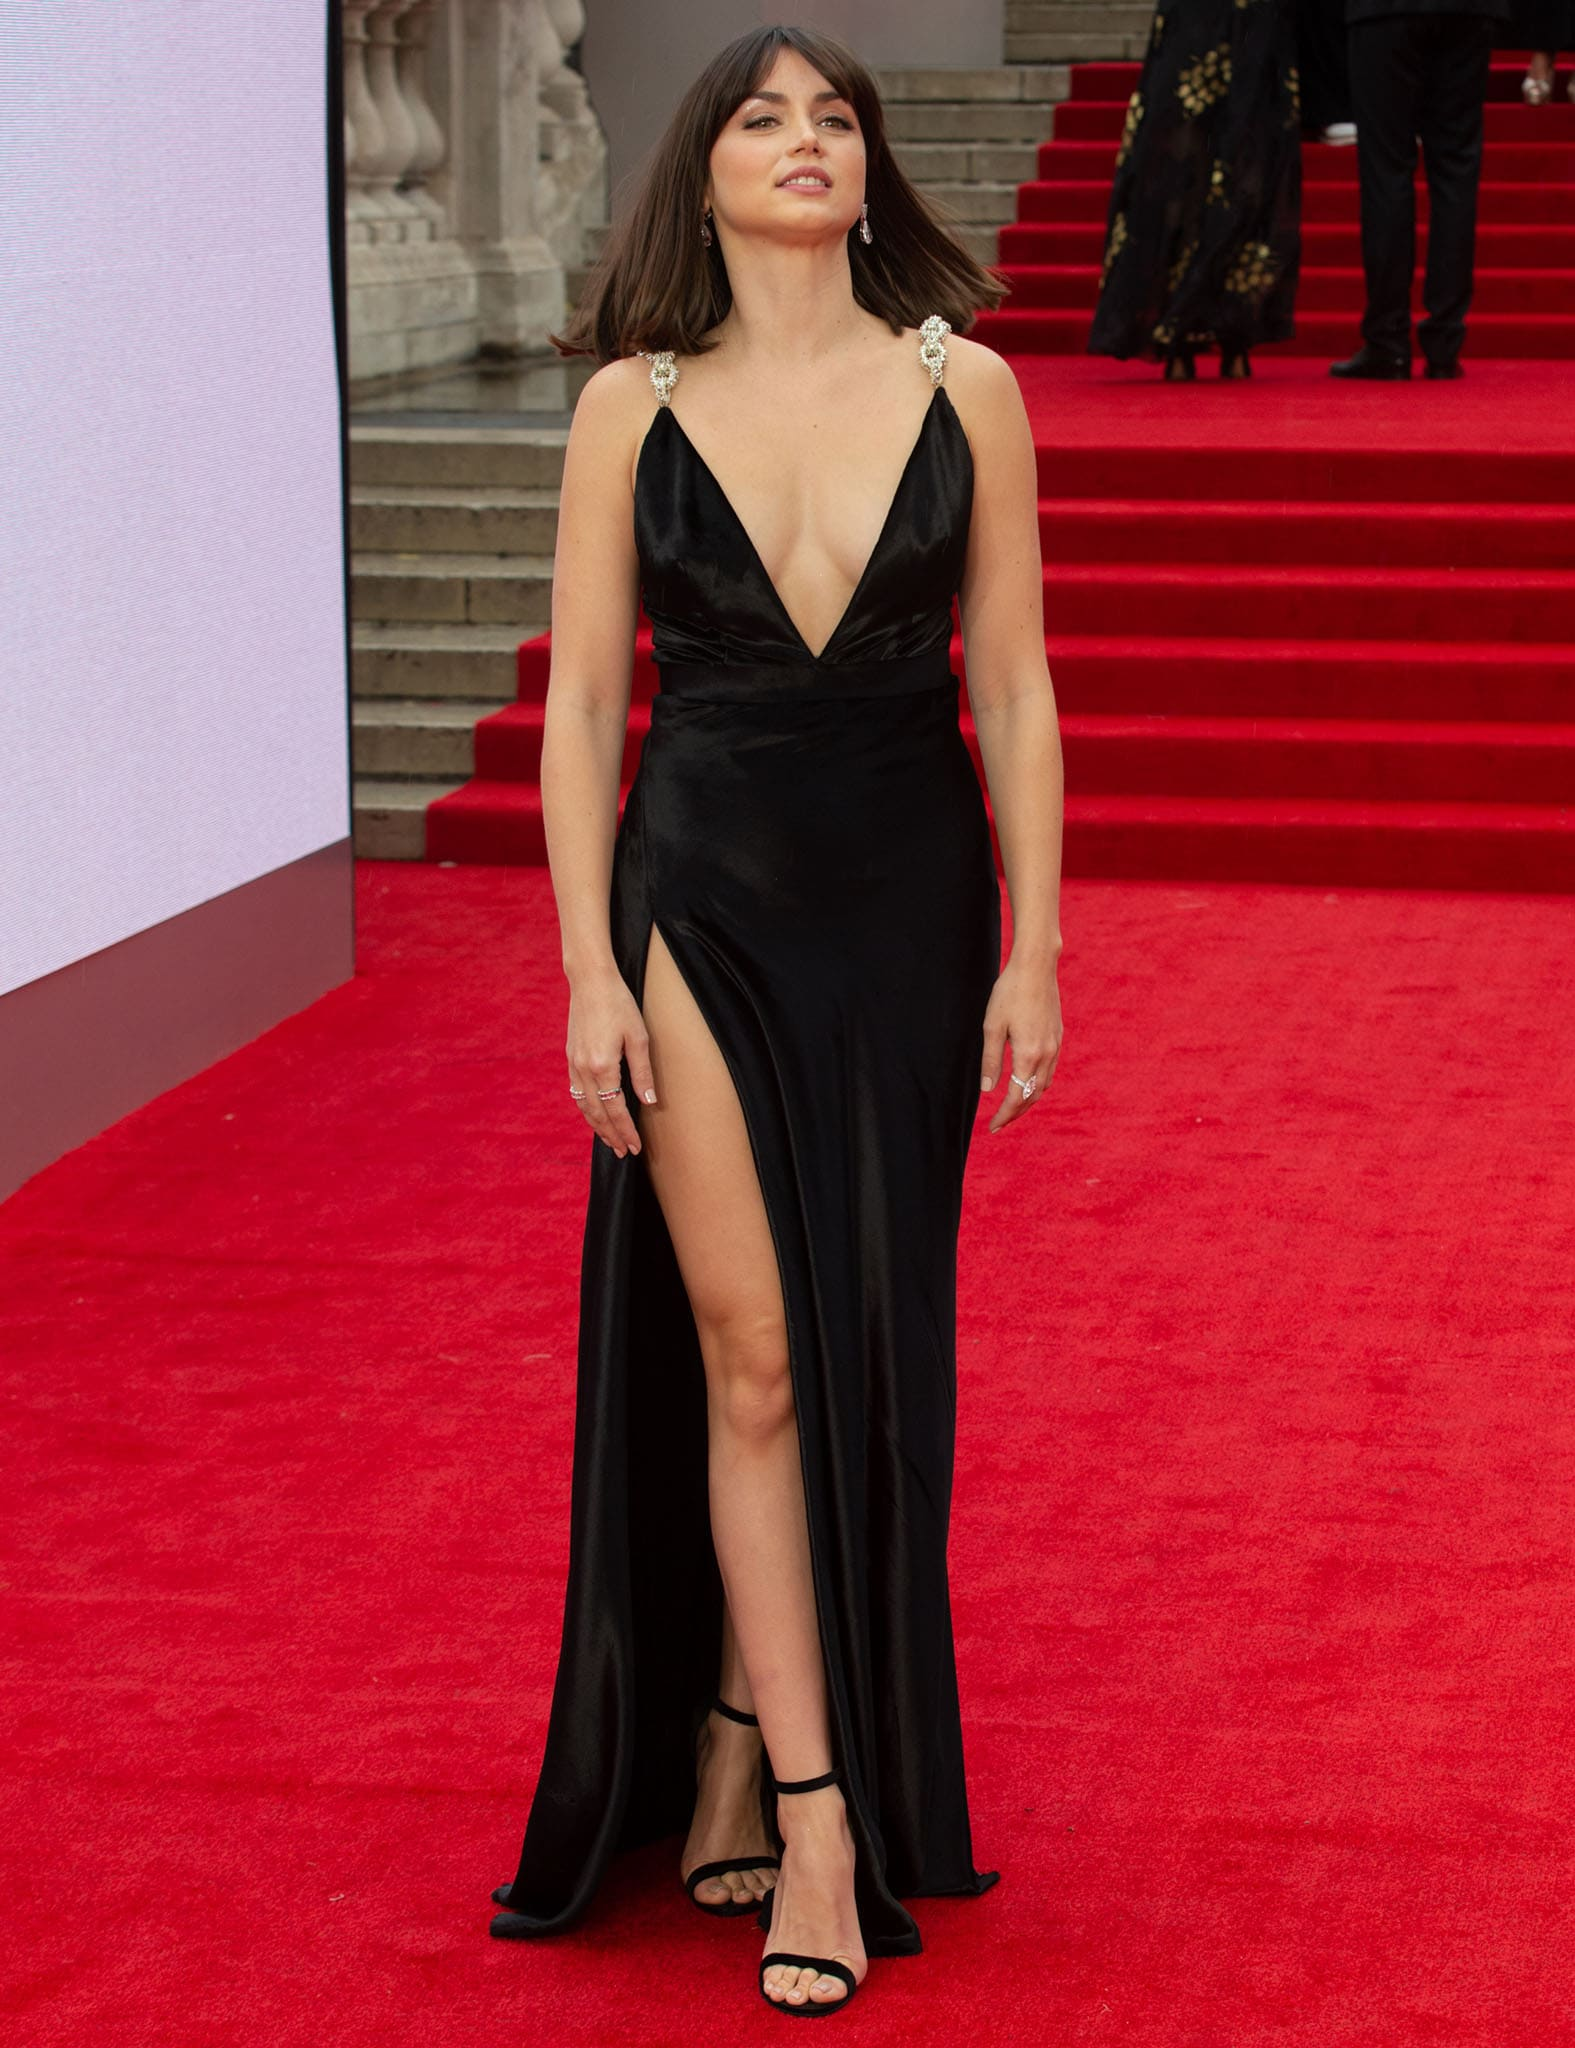 Ana de Armas looks every inch the movie star in her custom Louis Vuitton velvet gown